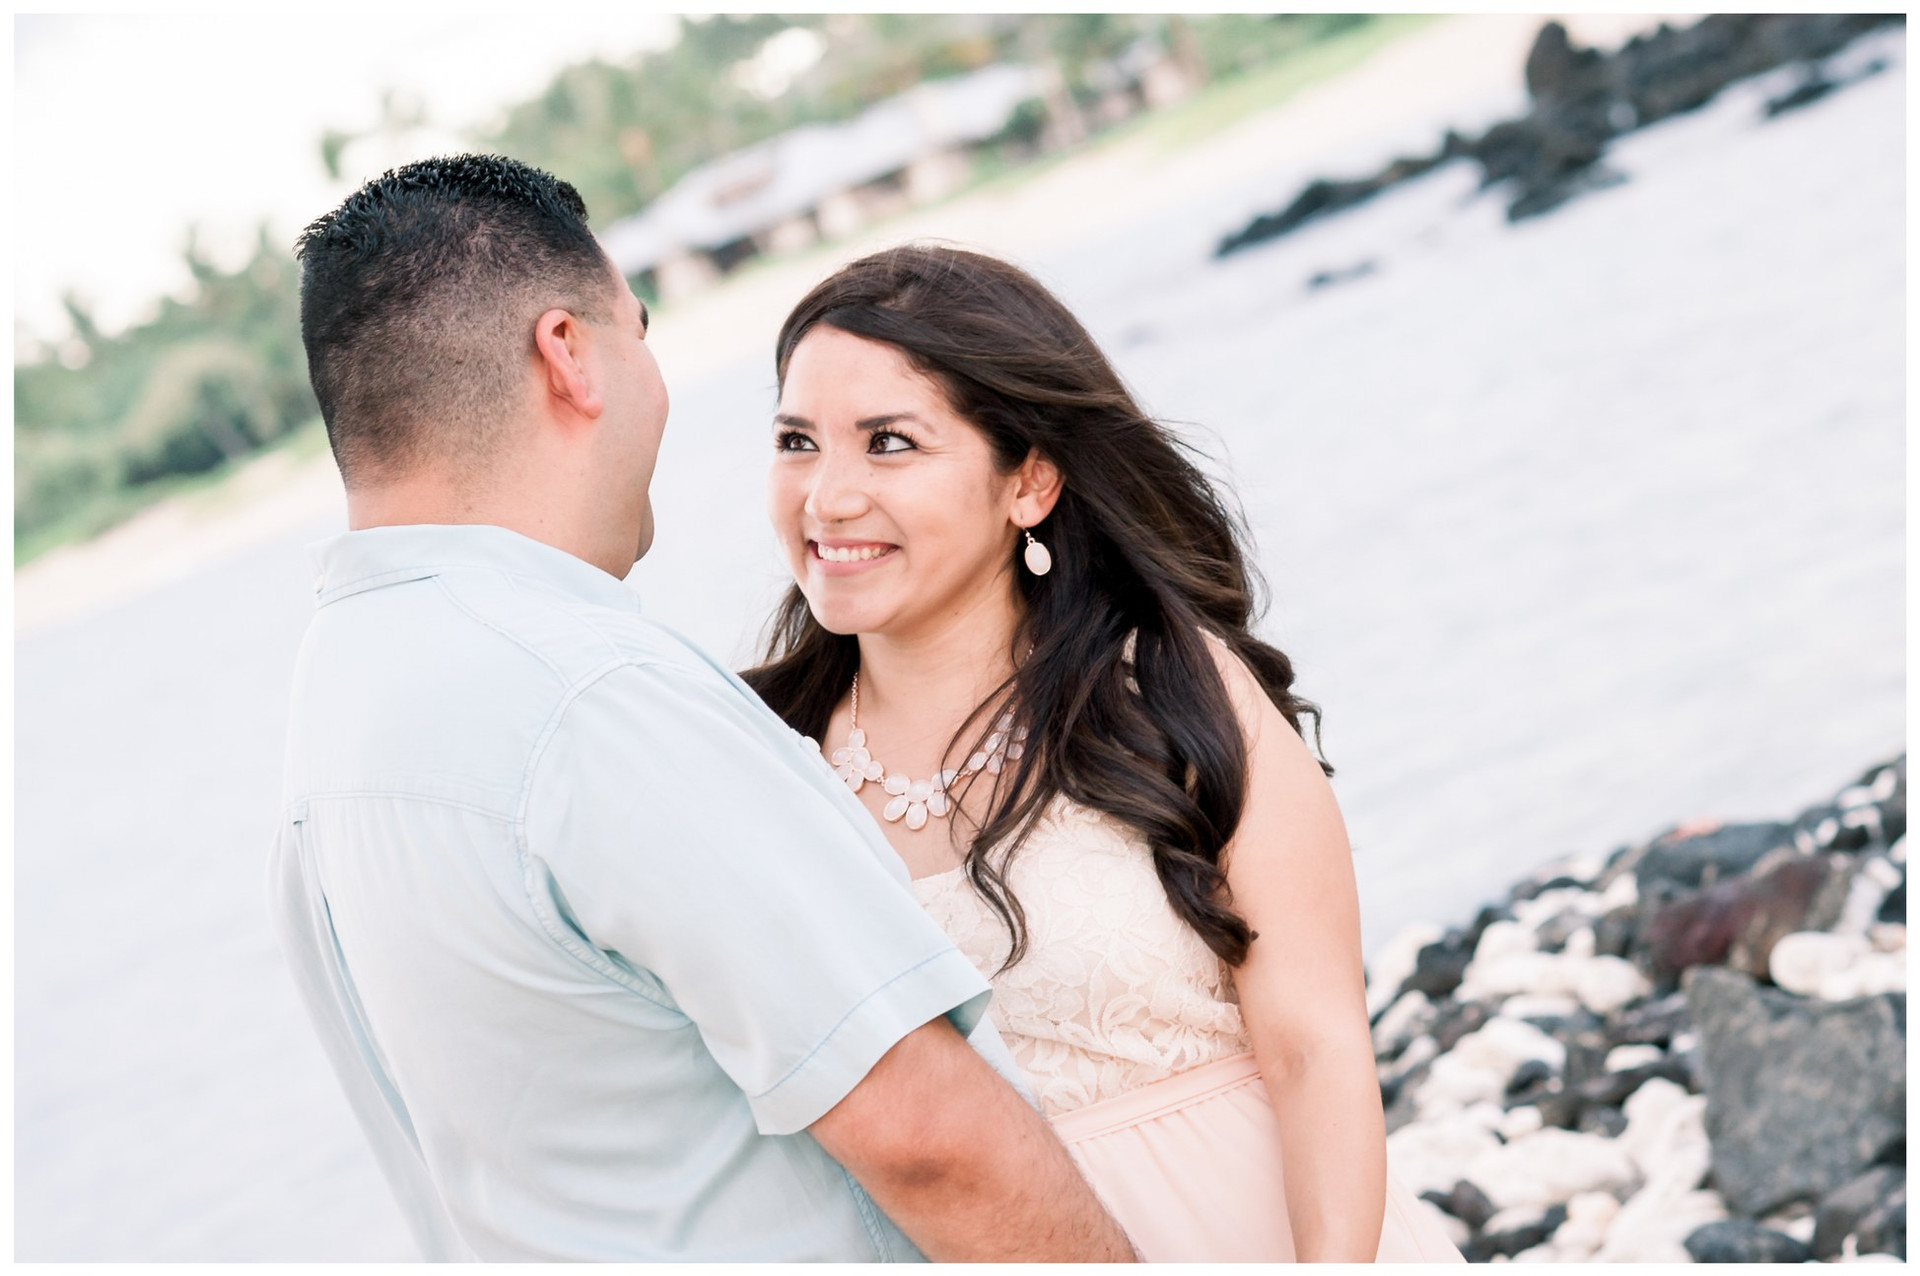 Hawaii Engagement Photographers 6.jpg